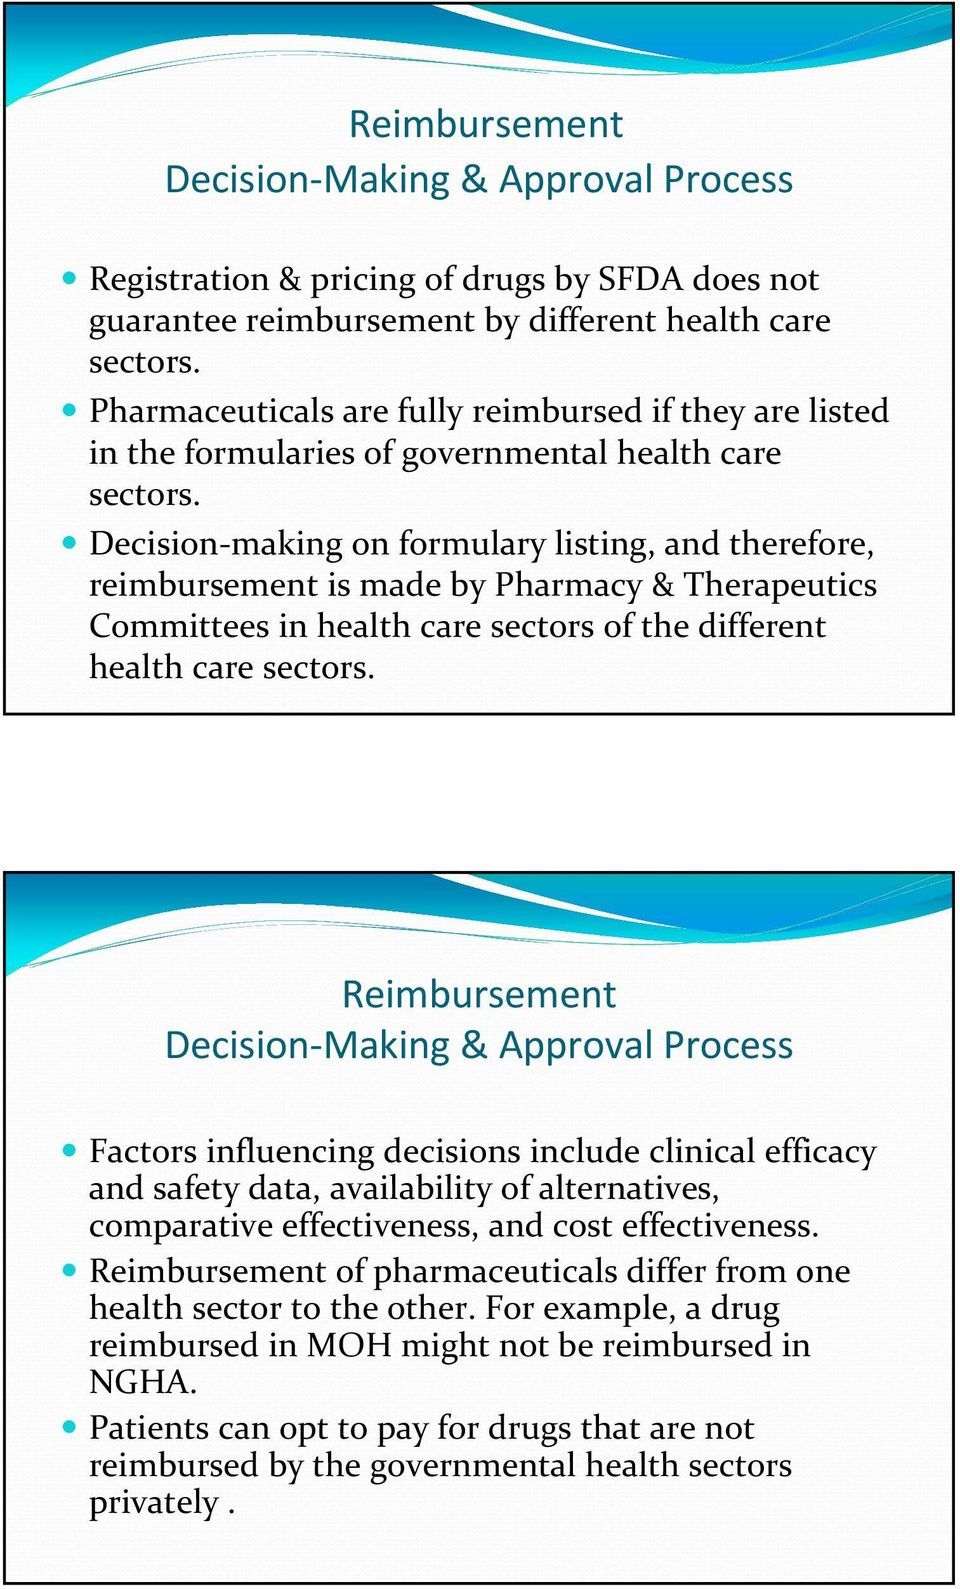 Decision making on formulary listing, and therefore, reimbursement is made by Pharmacy & Therapeutics Committees in health care sectors of the different health care sectors.